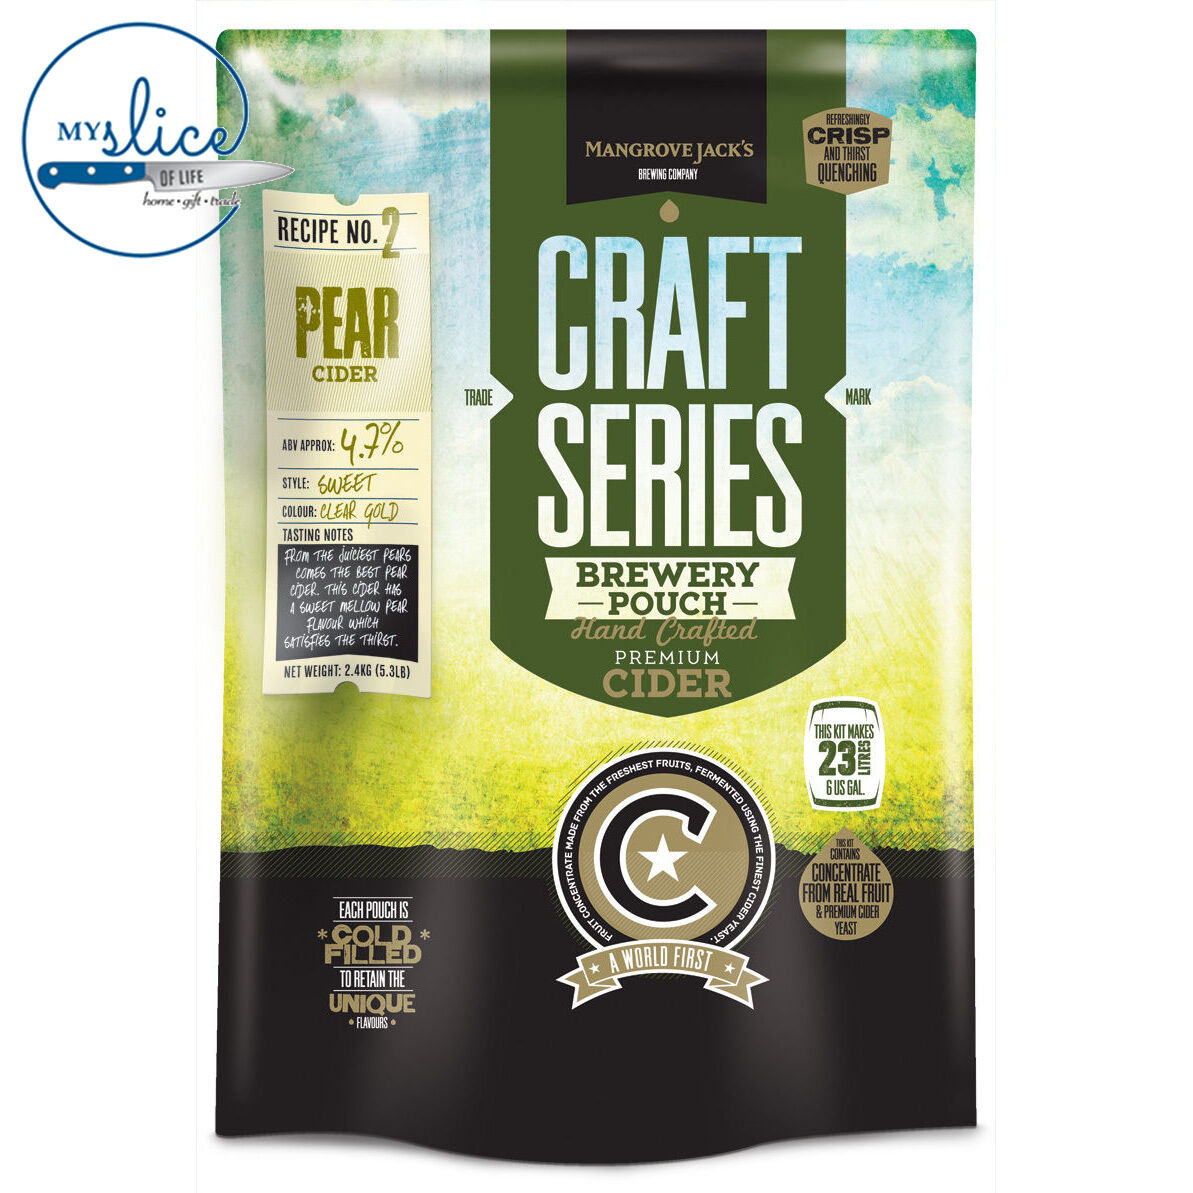 Mangrove Jack's Craft Series Pear Cider Pouch - 2.4kg - Home Brew